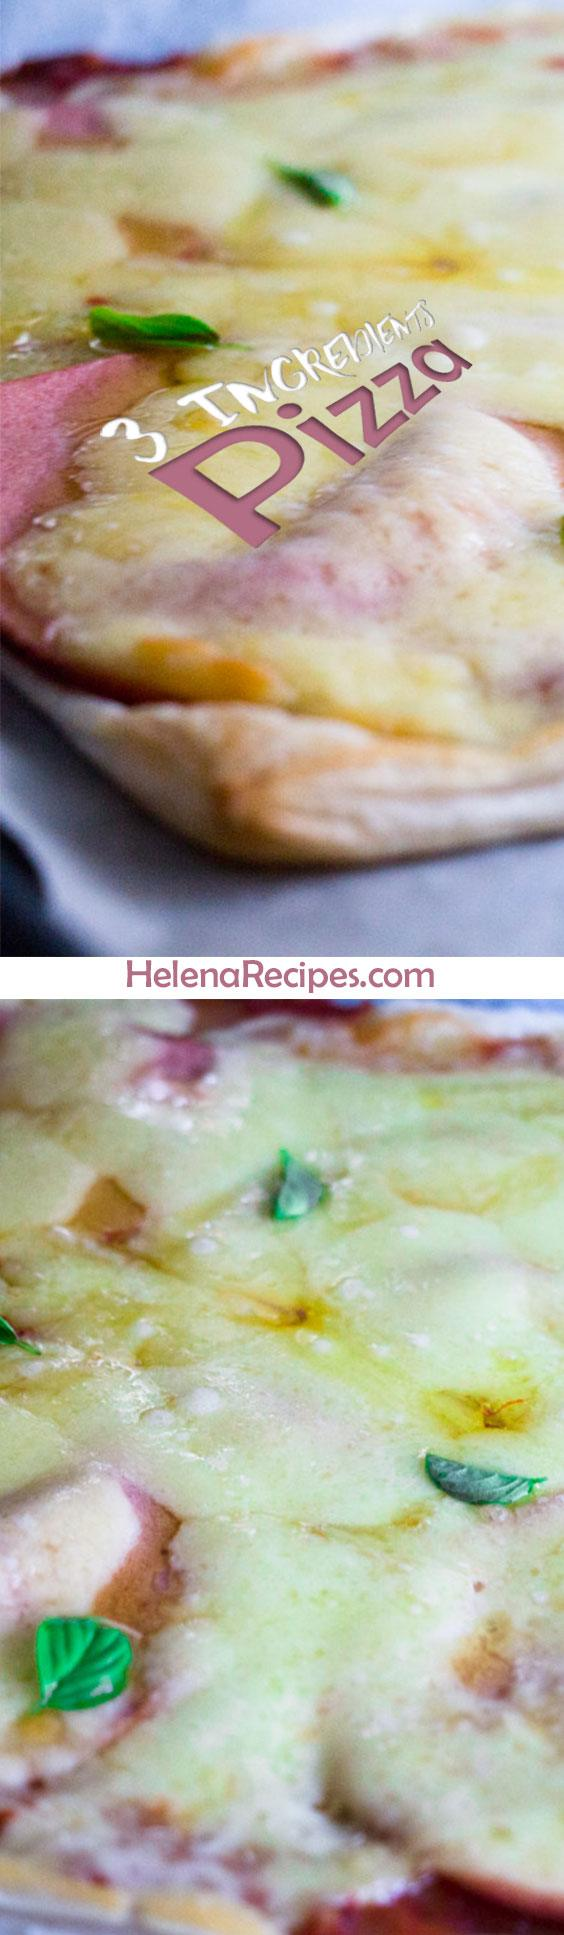 Pizza-with-Oliving-Devon,-Cheddar-and-Cheese-for-Pinterest